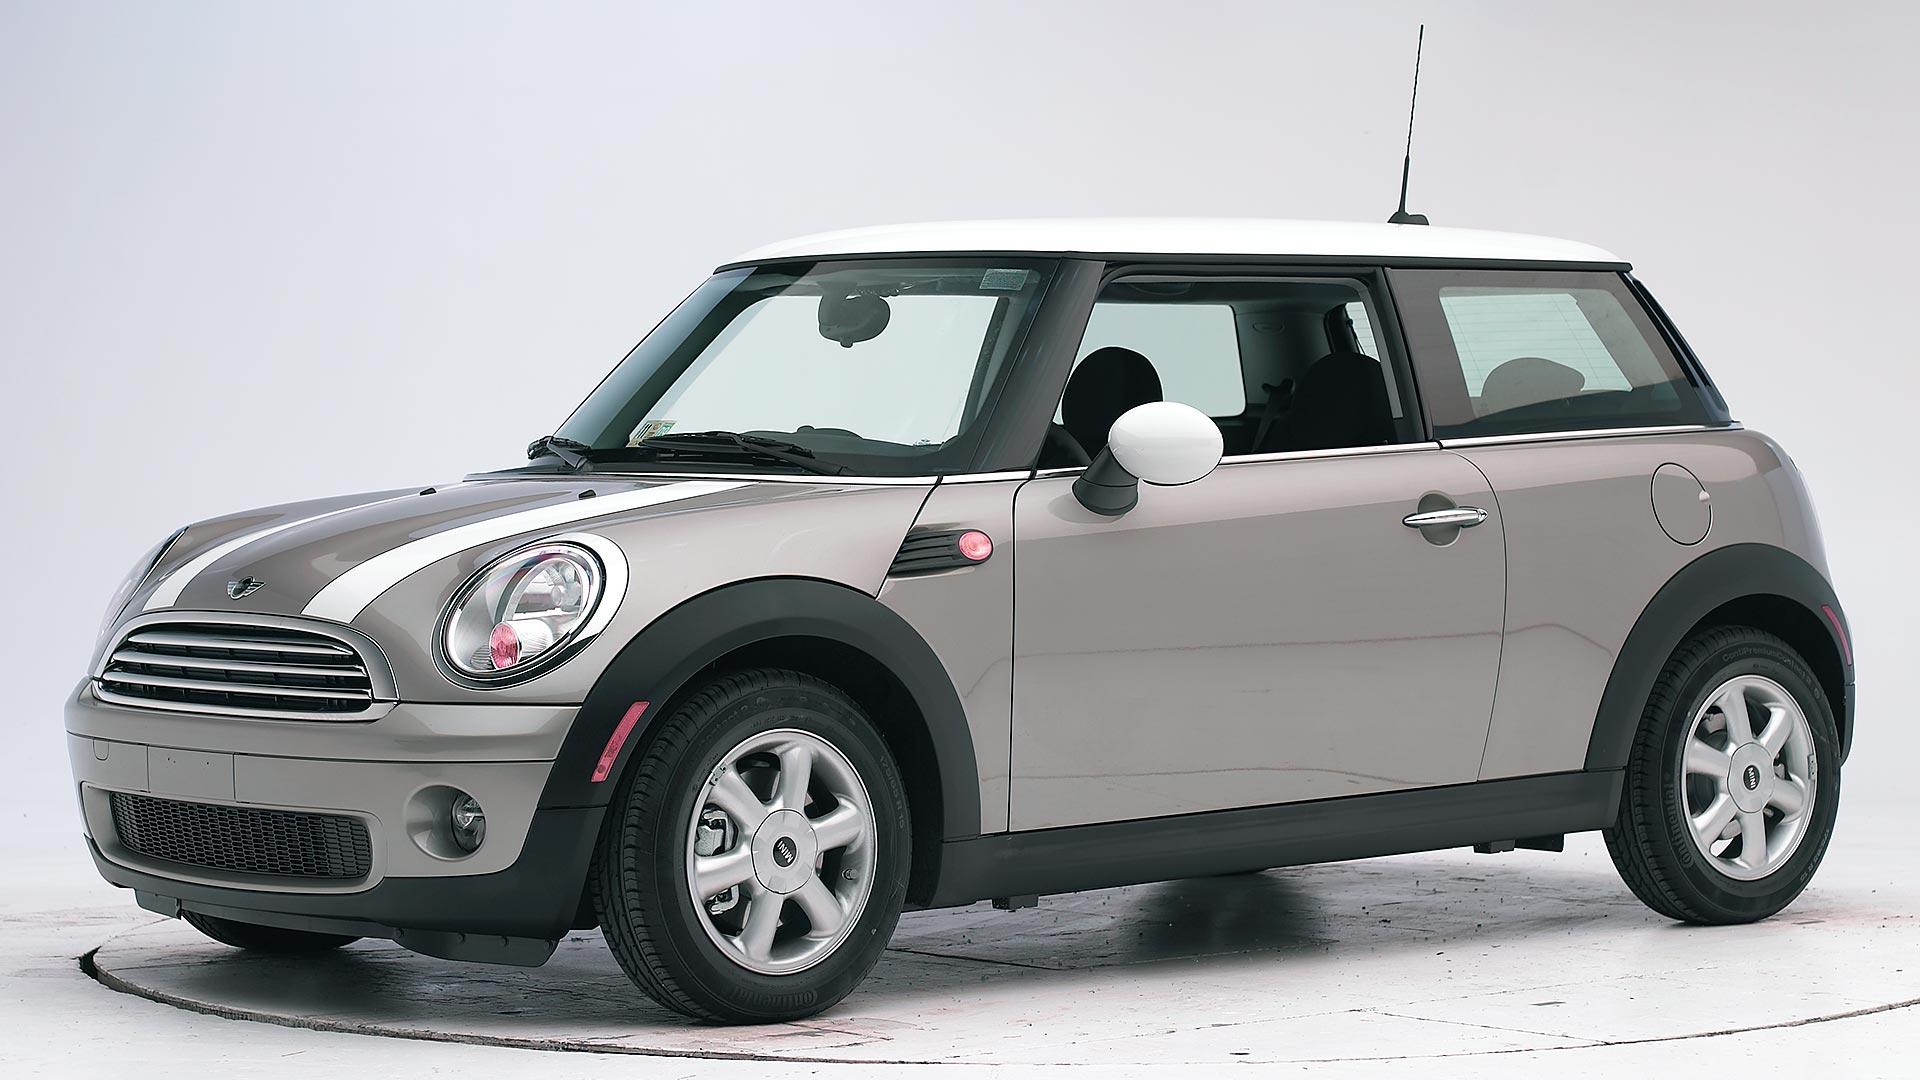 2011 Mini Cooper 2-door hatchback